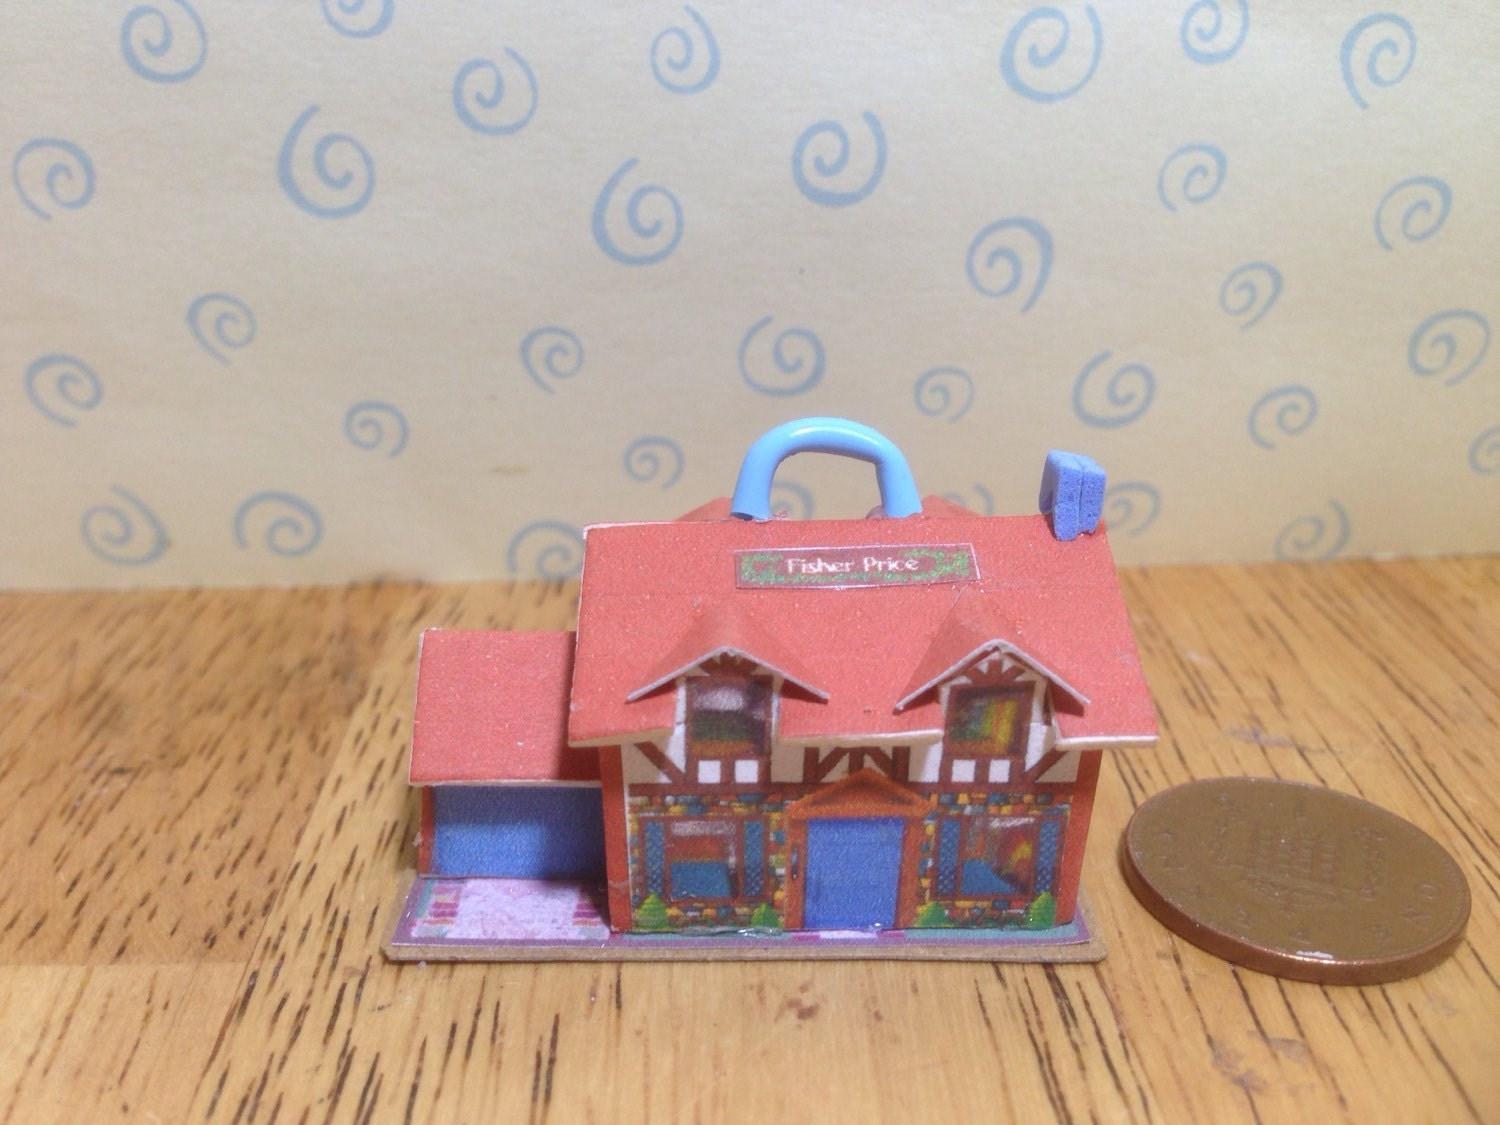 Hand made Dolls house Miniature replica vintage fisher price play family tudor house NEW 112 scale